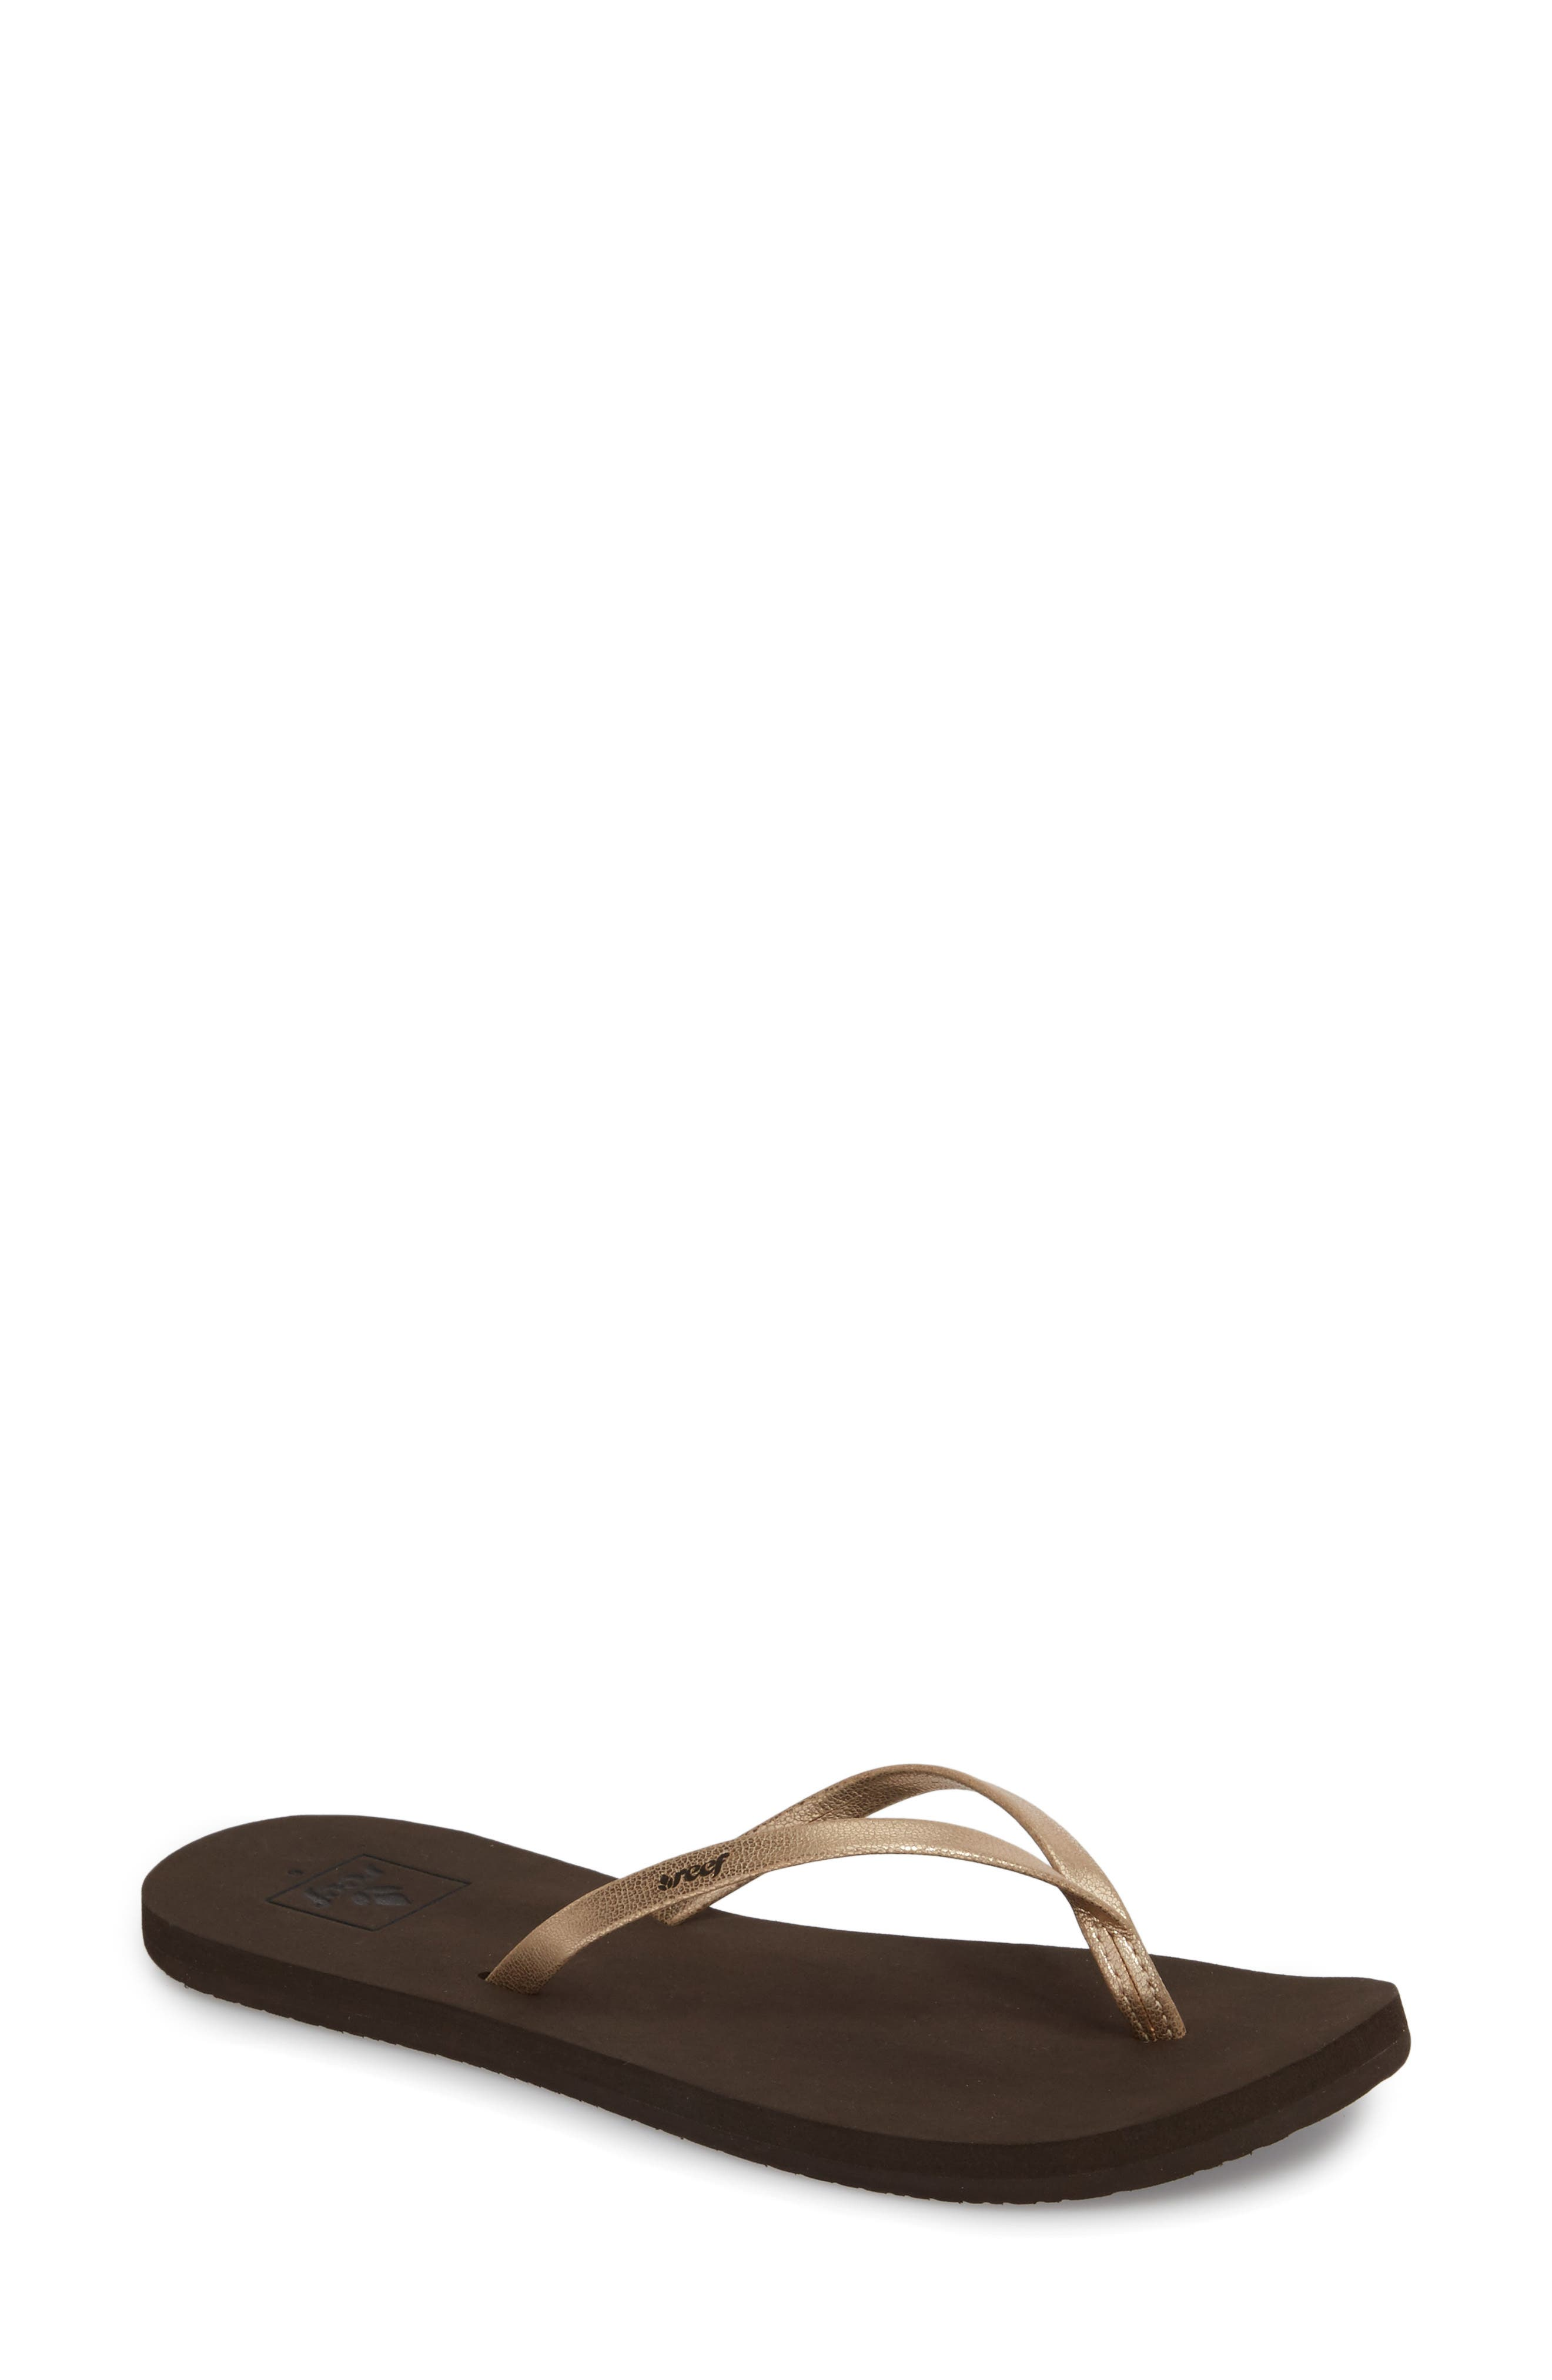 Bliss Nights Flip Flop,                         Main,                         color,